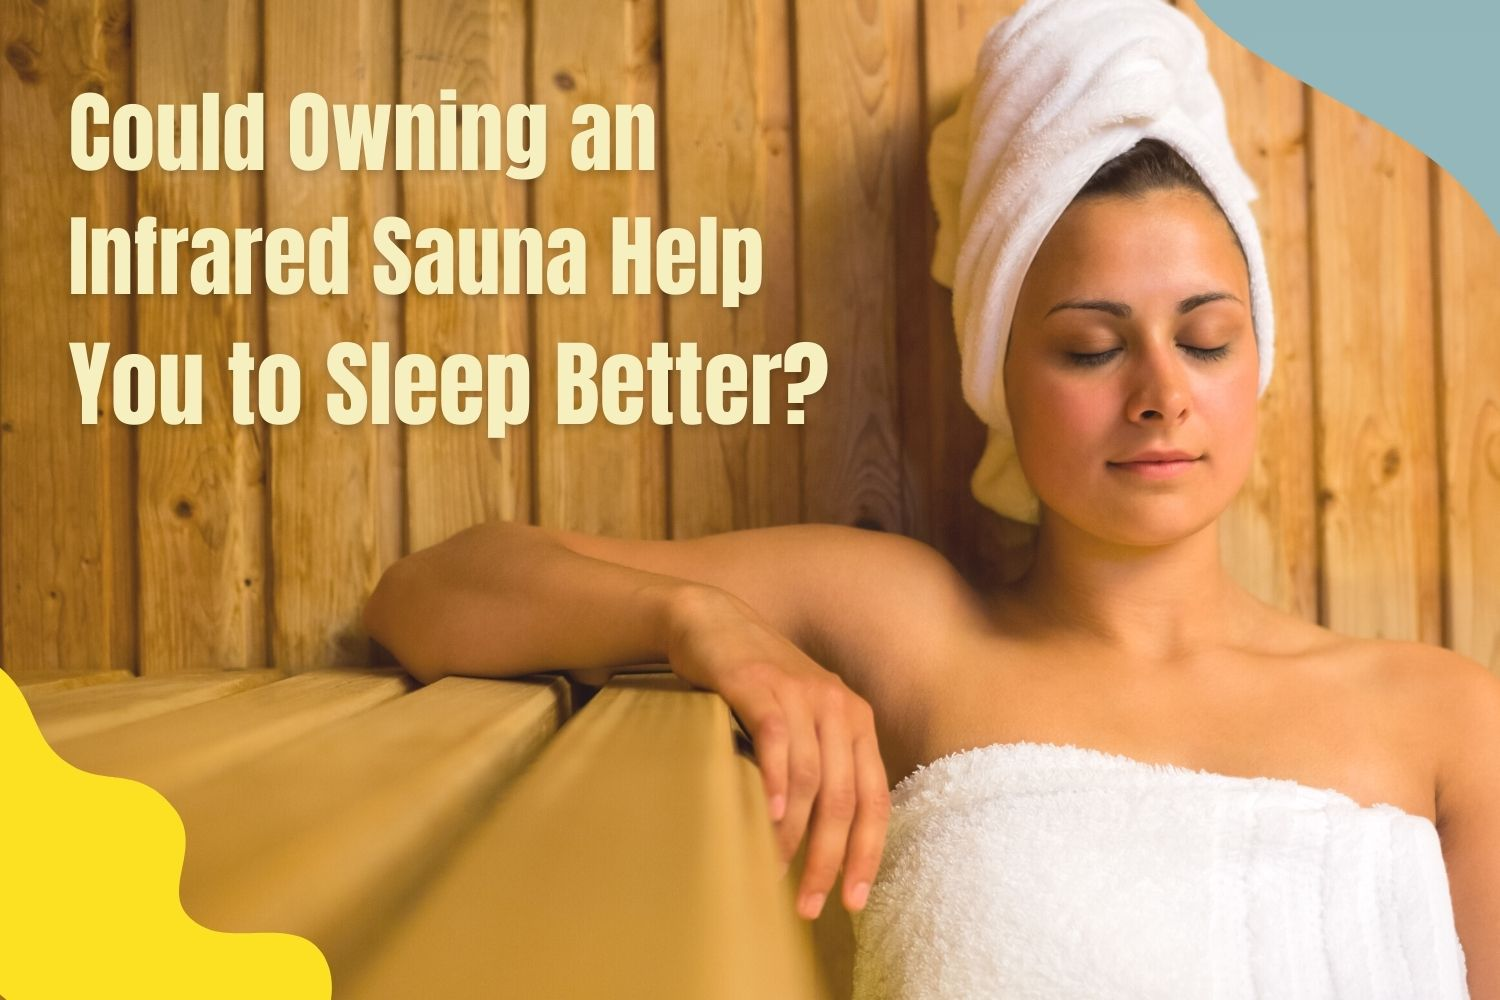 Does Owning a Sauna help you to sleep better?